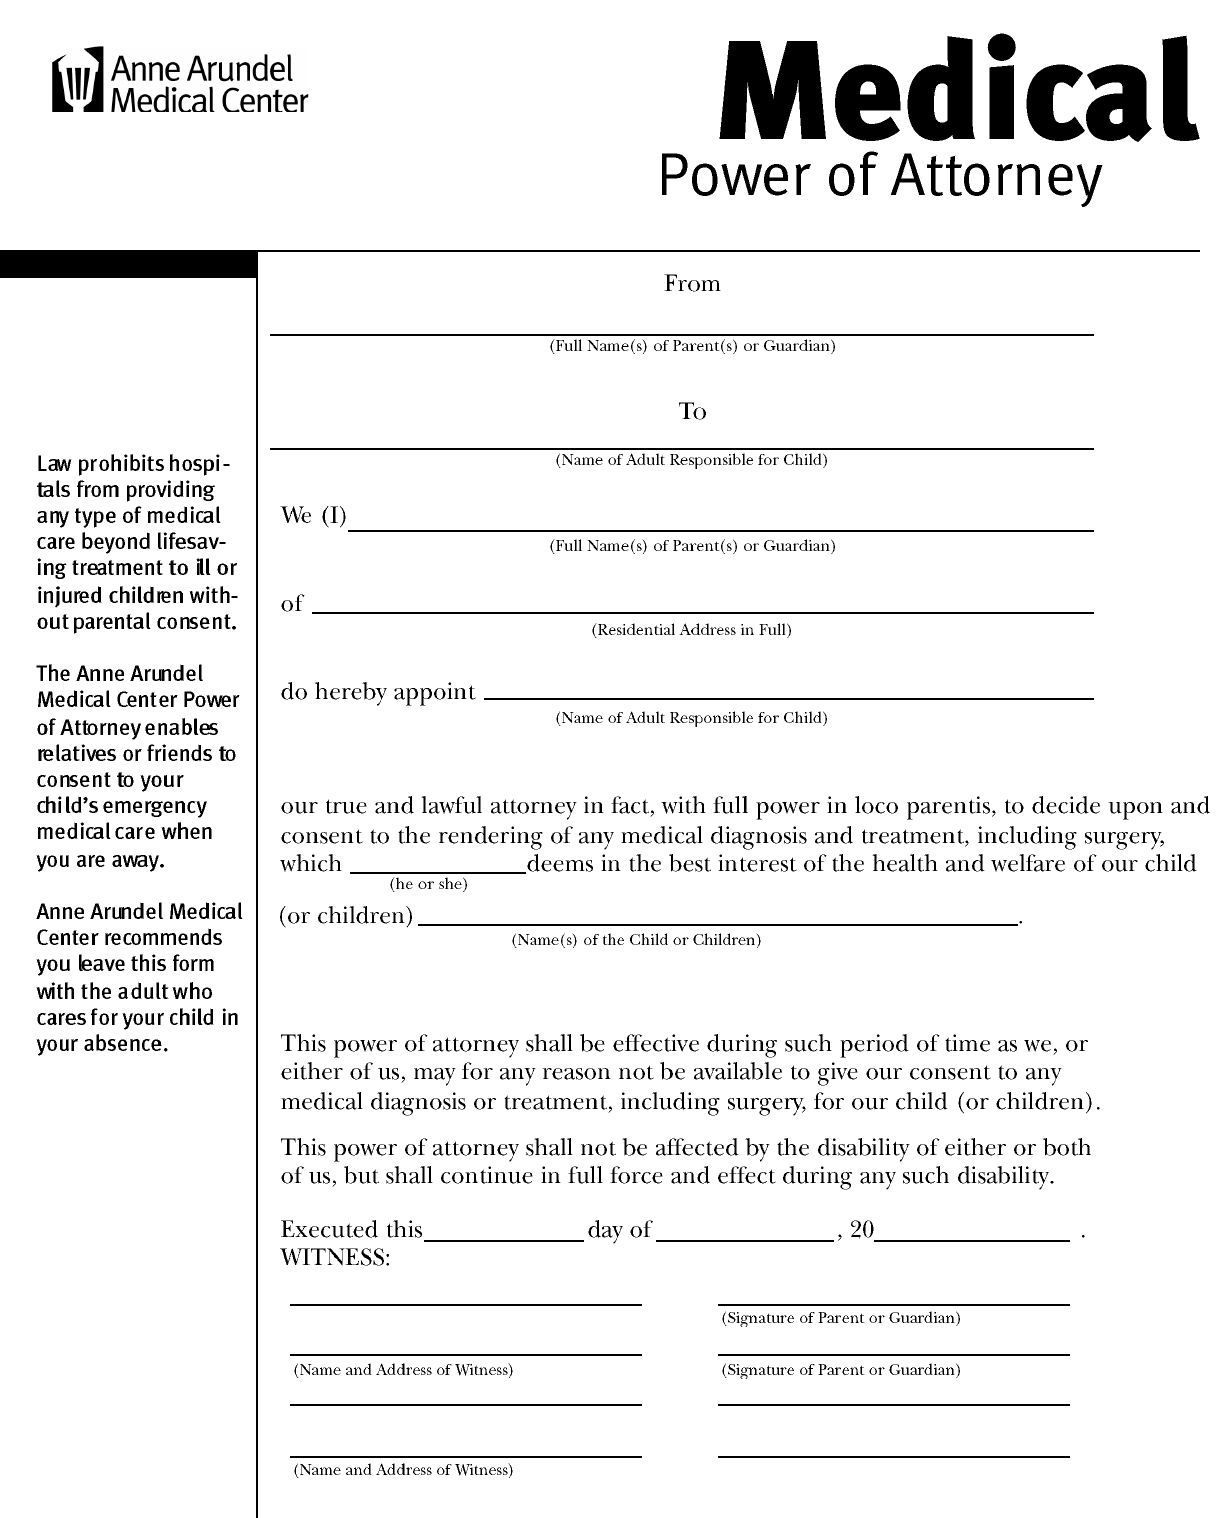 Download maryland medical power of attorney form for free tidyform maryland medical power of attorney form falaconquin